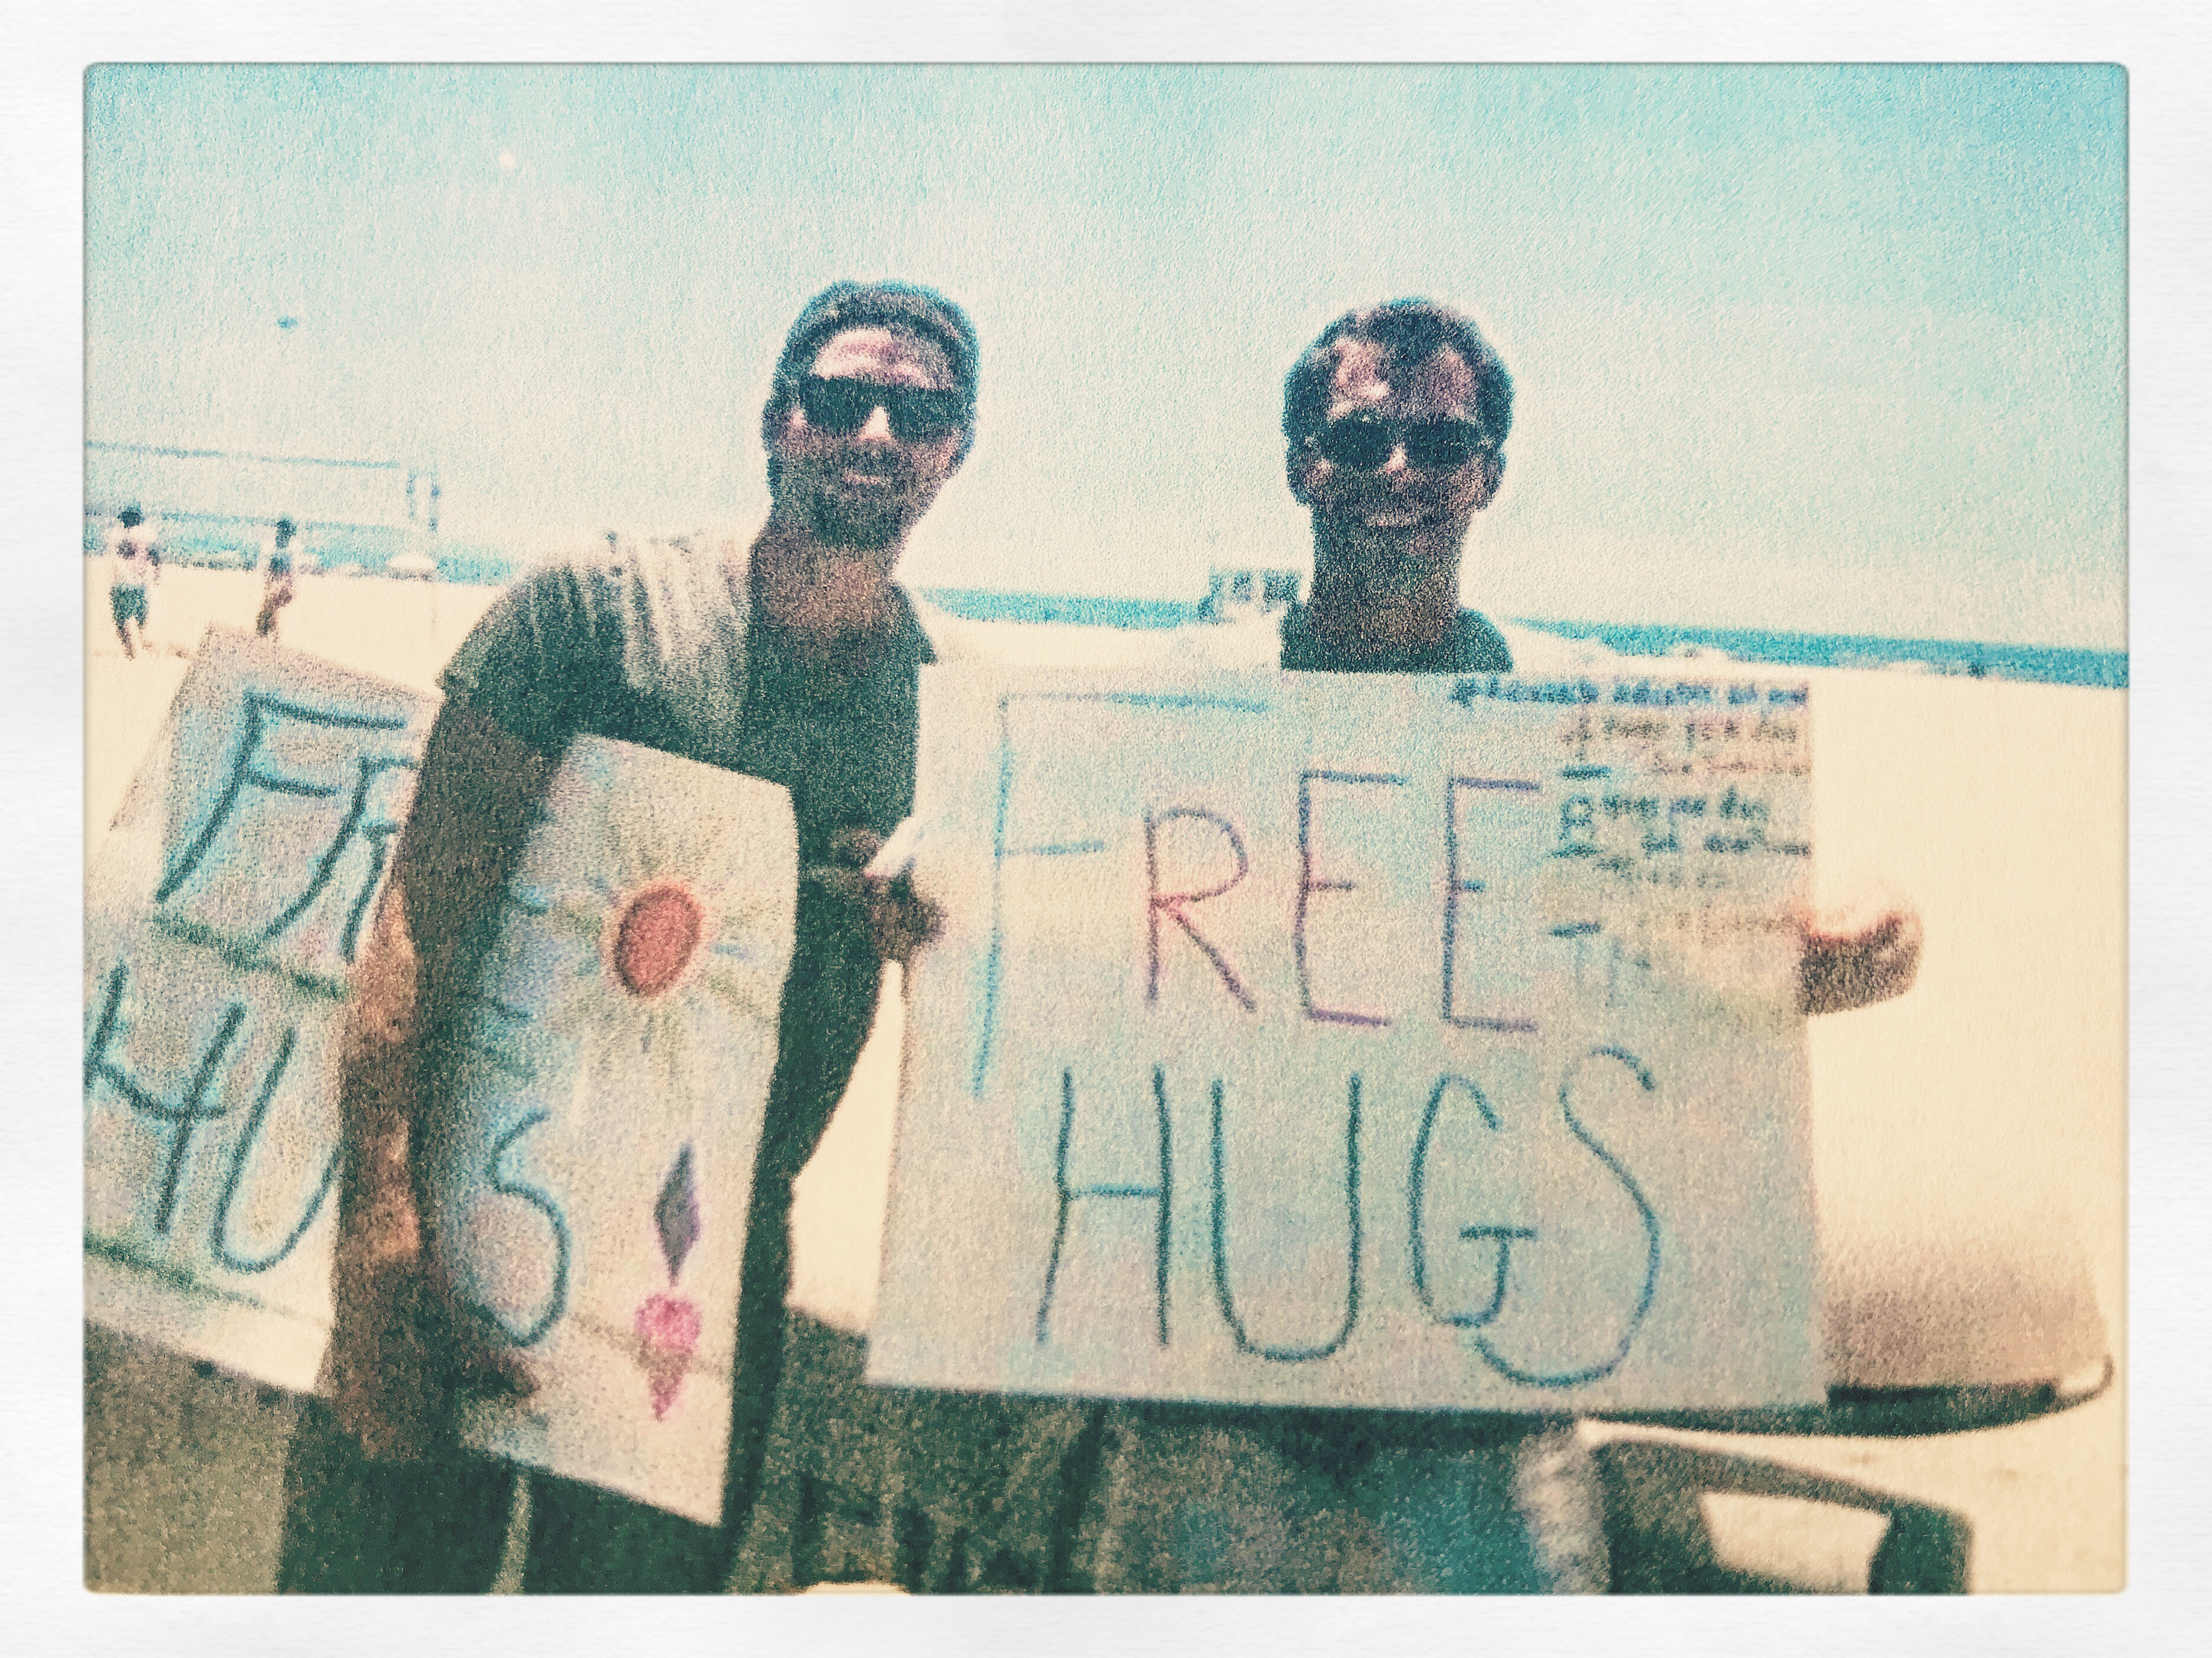 77955115350a How to Give Free Hugs: A Case Study in Being Wholly and Fully Present.